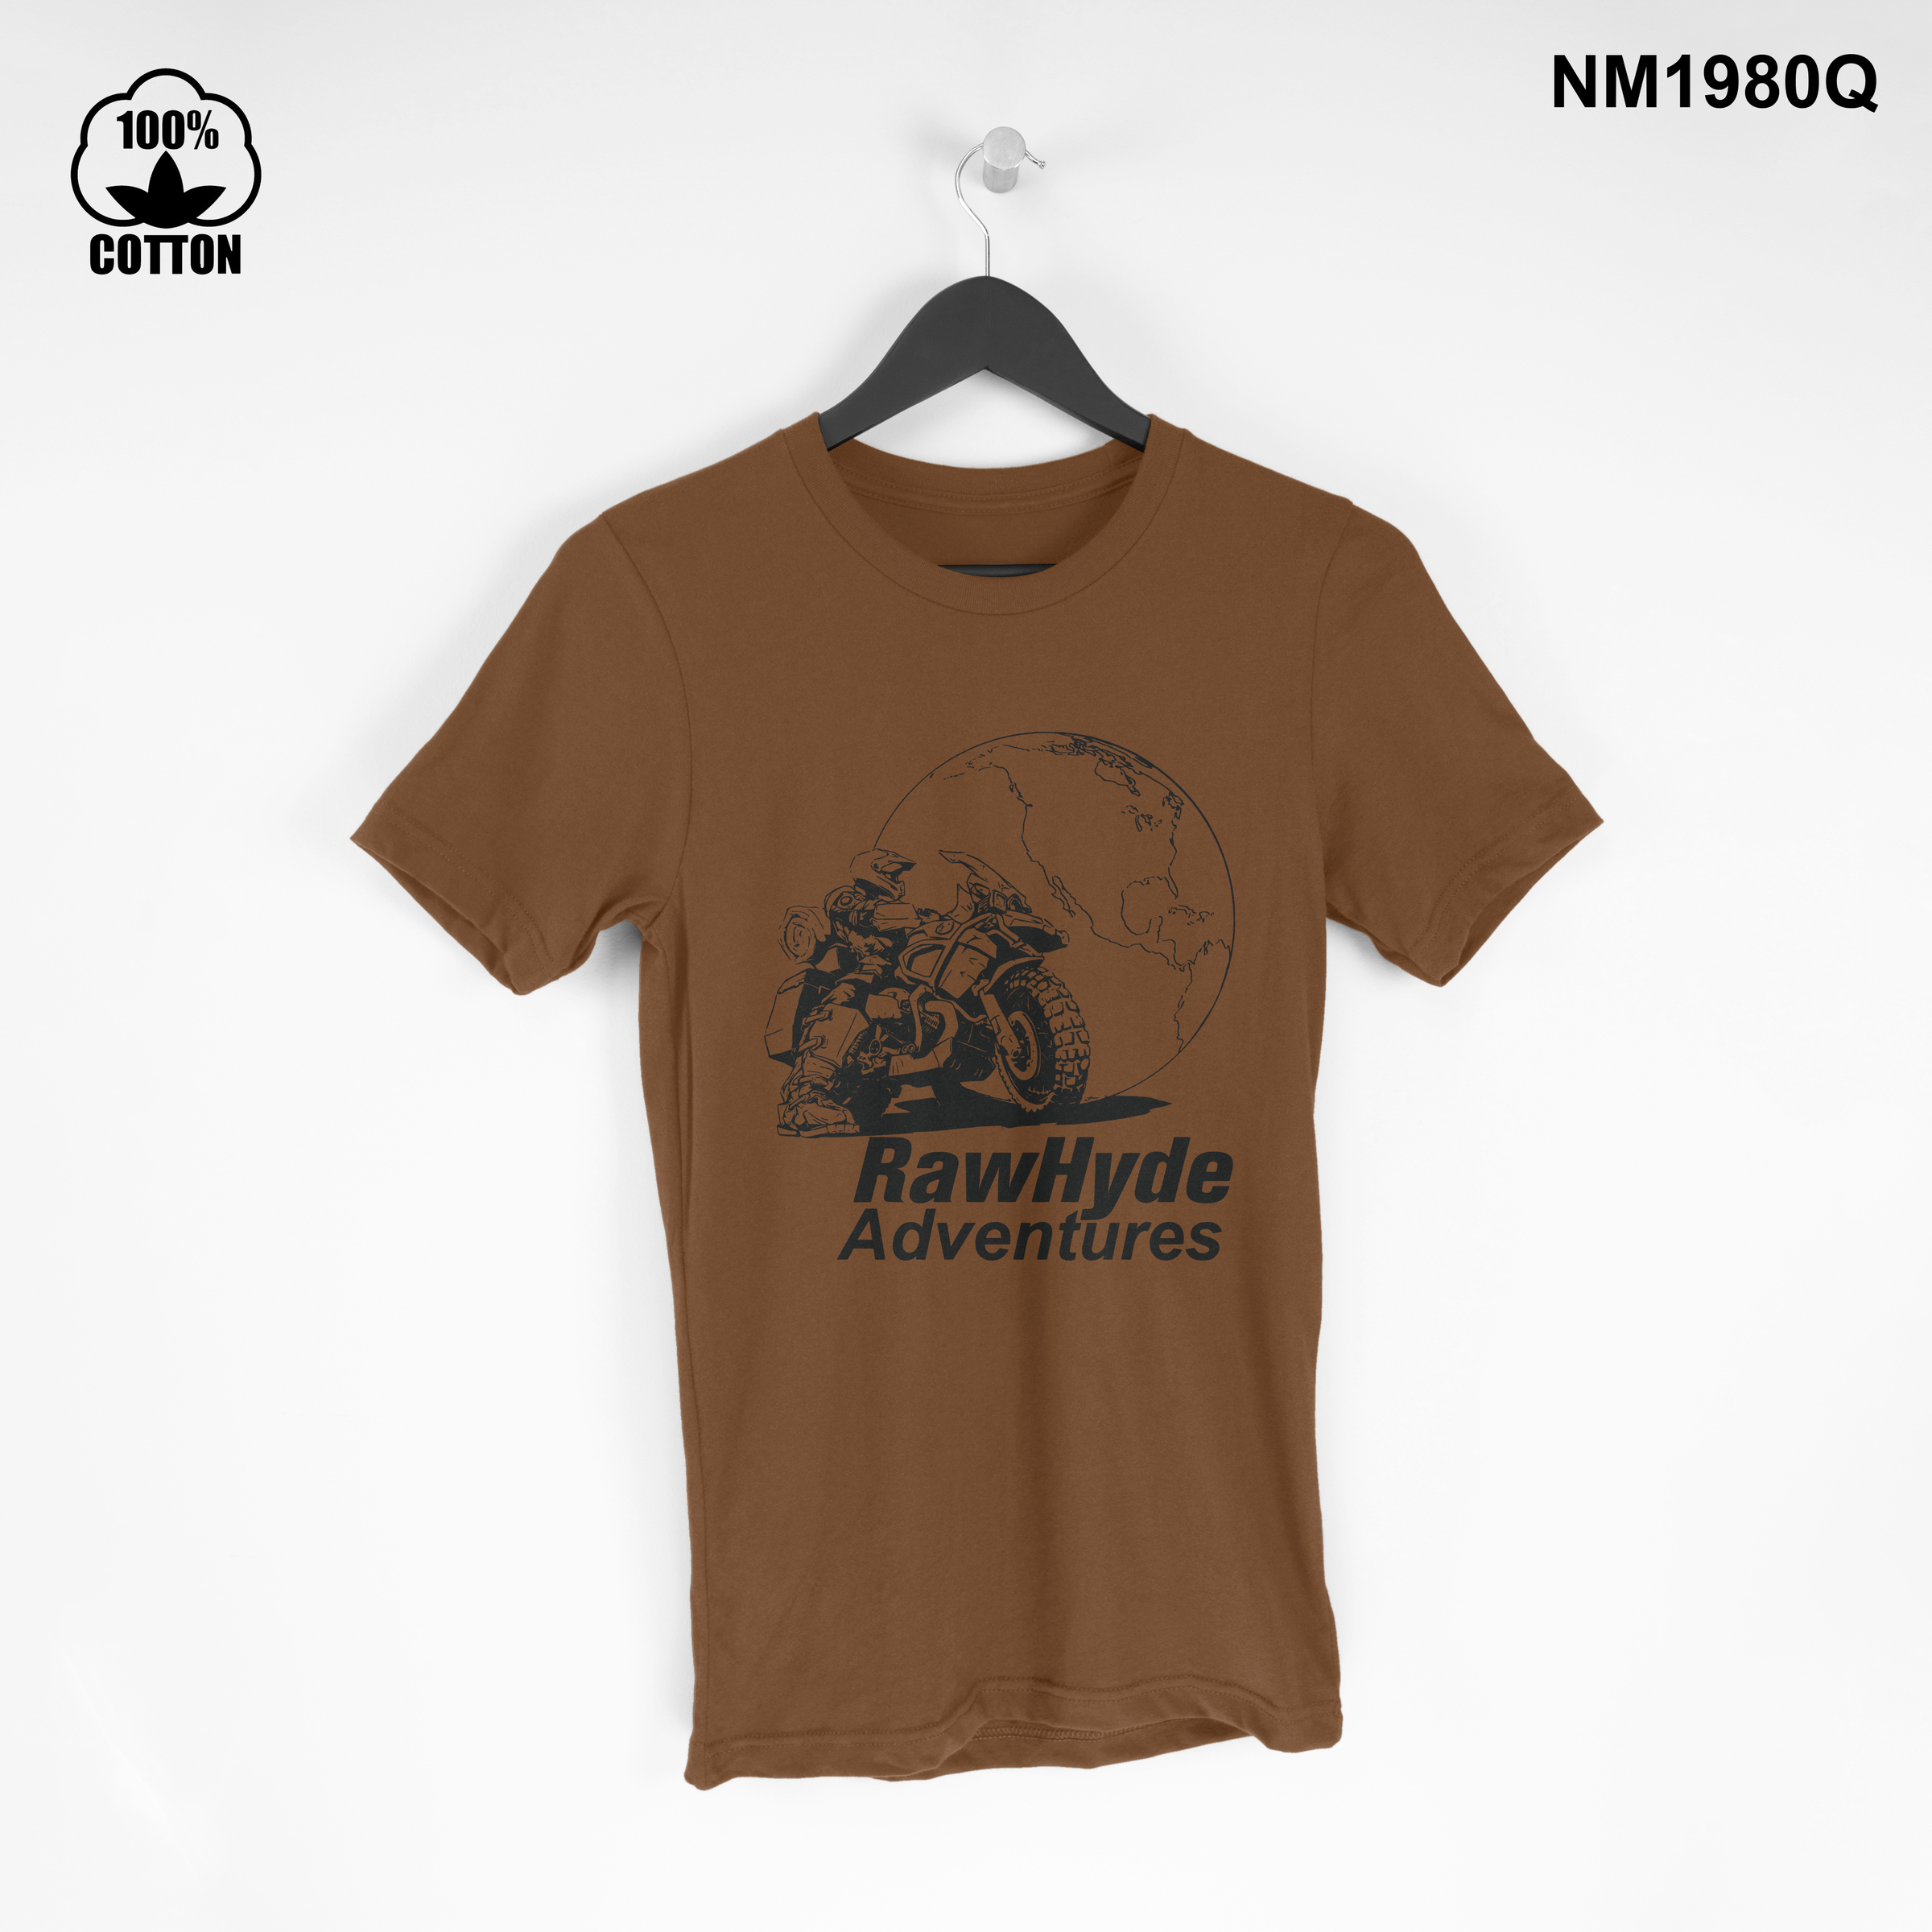 1.48 New Design Raw Hyde Adventures Idea From  BMW R1200GS In The World saddle brown.jpg